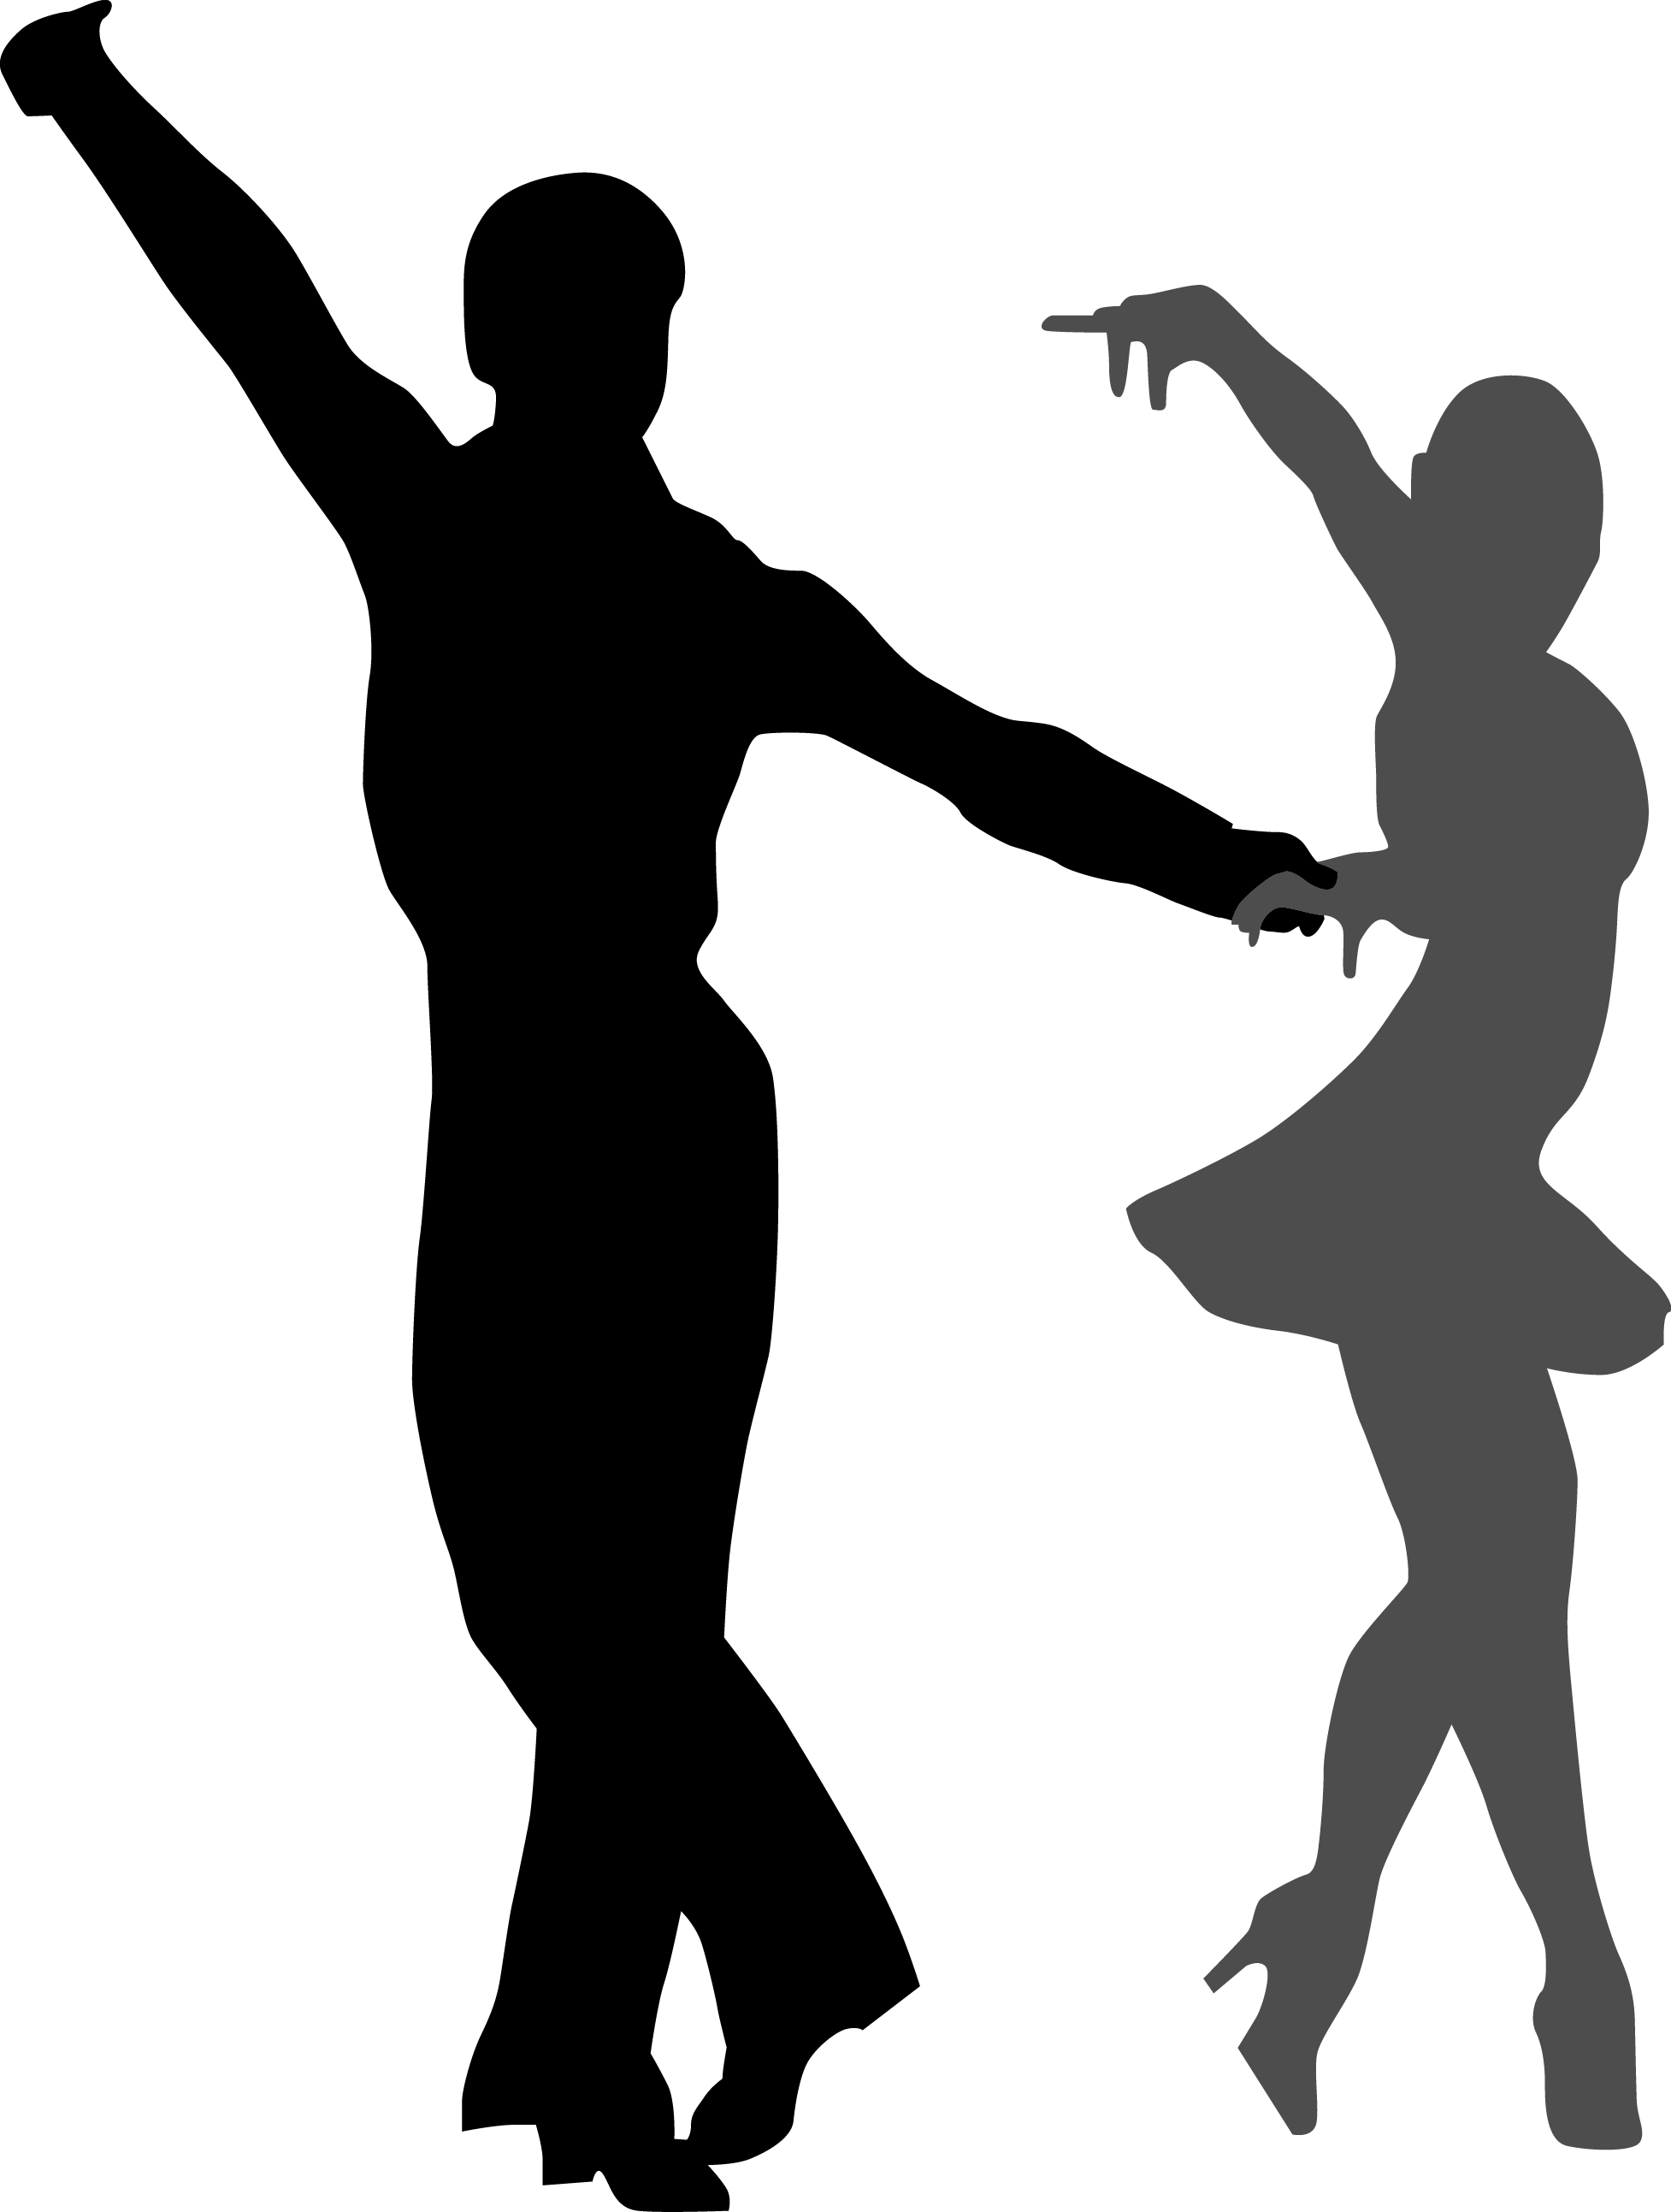 Ballroom dance clip art clipart images gallery for free download.